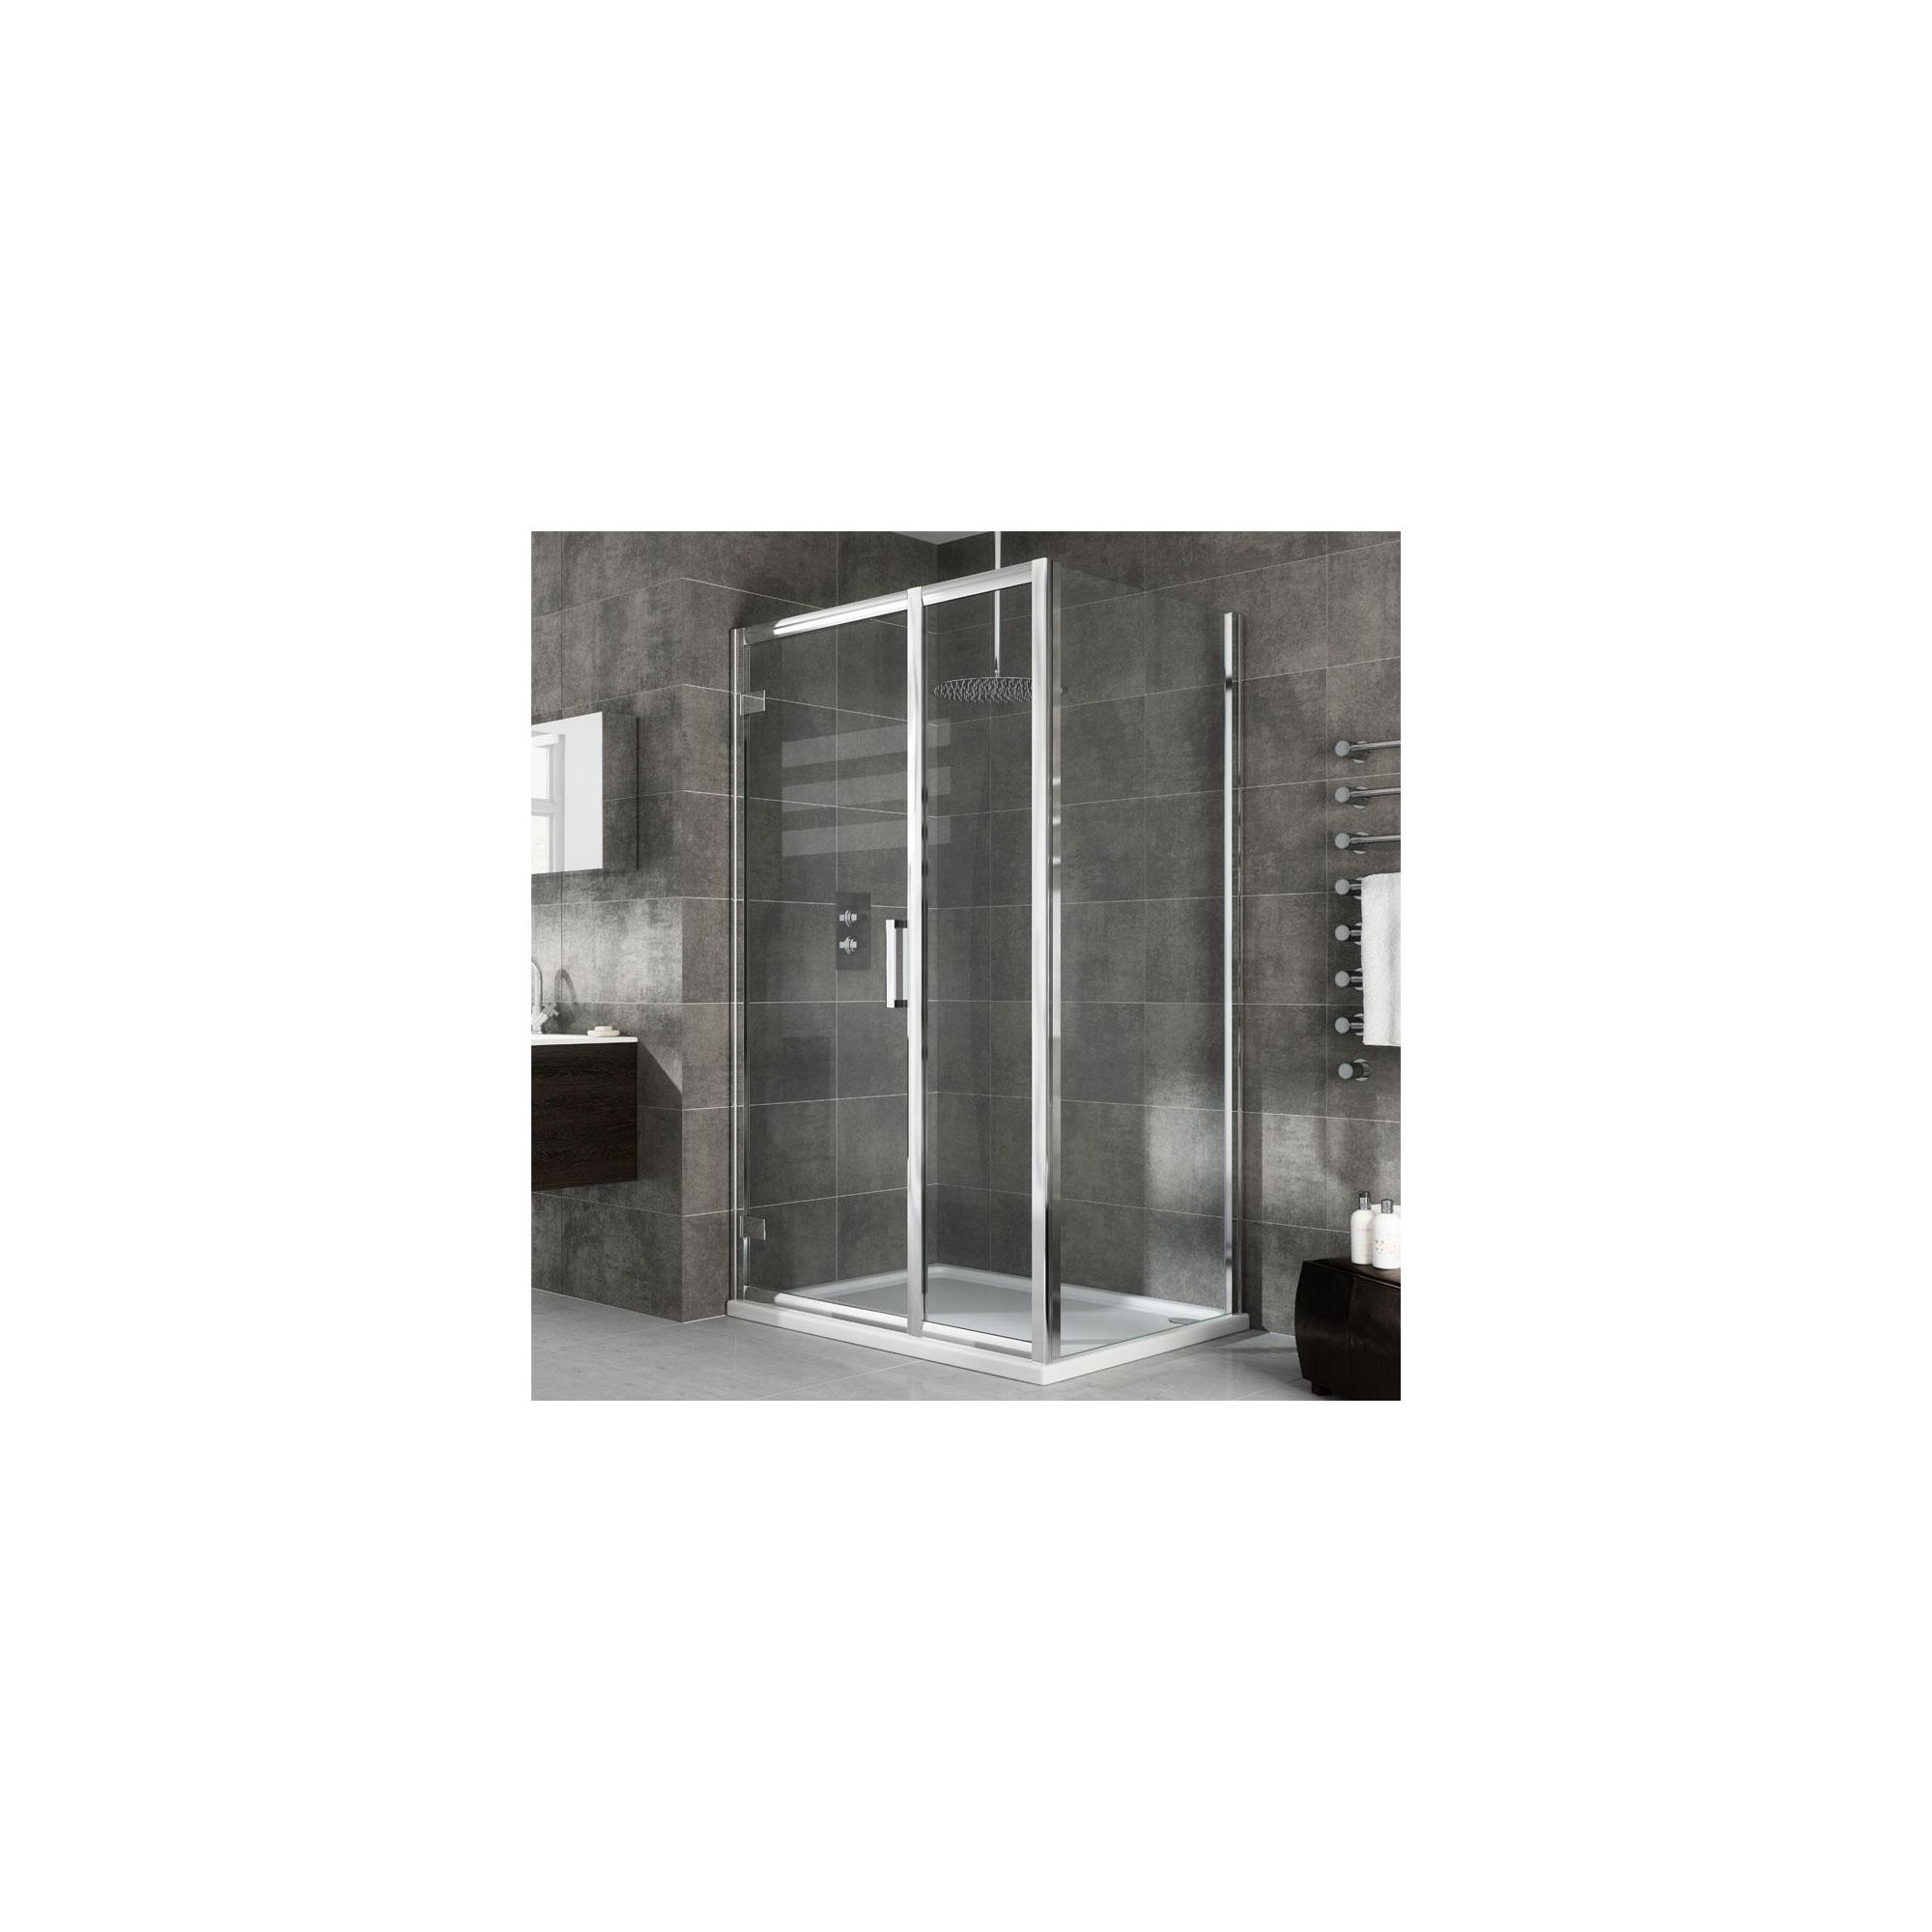 Elemis Eternity Inline Hinged Shower Door, 1400mm Wide, 8mm Glass at Tescos Direct